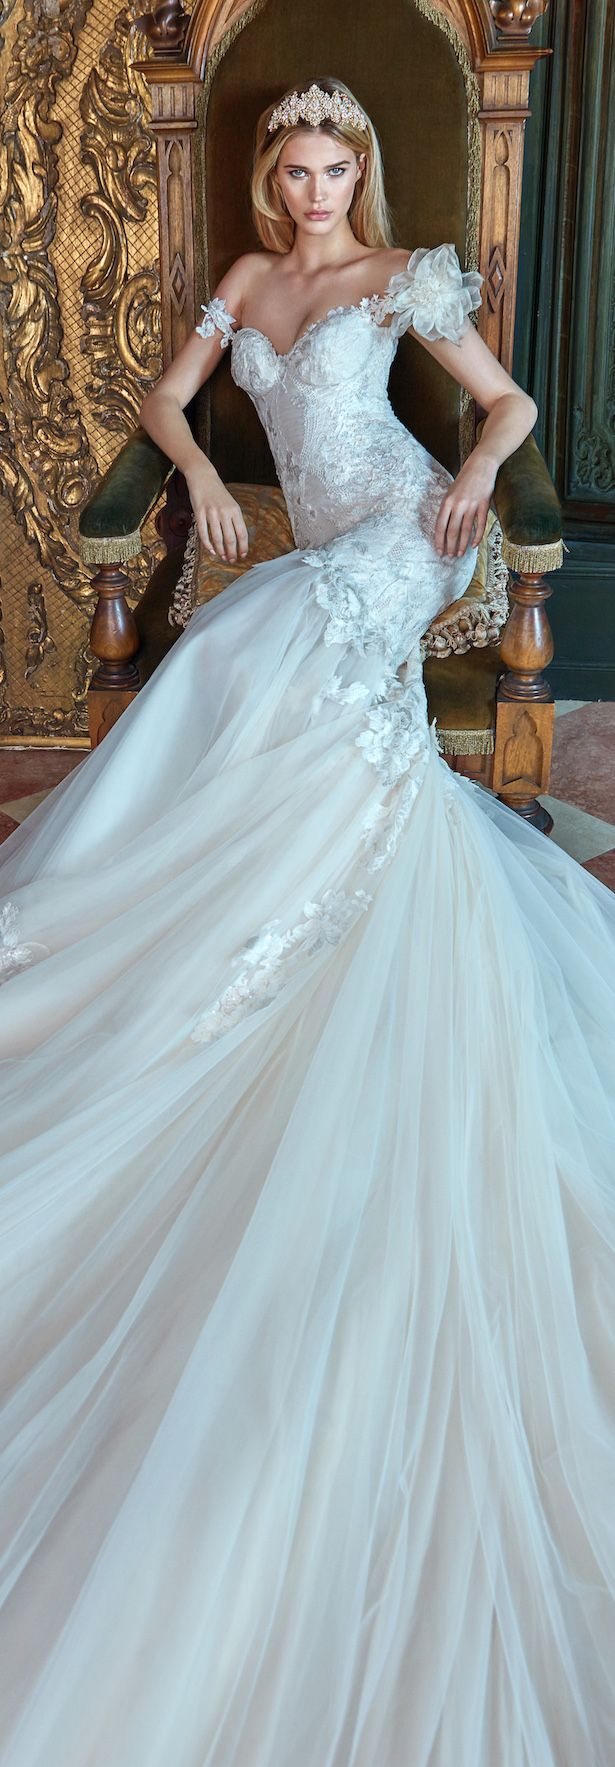 44 best Elegant Wedding Dresses images on Pinterest | Homecoming ...